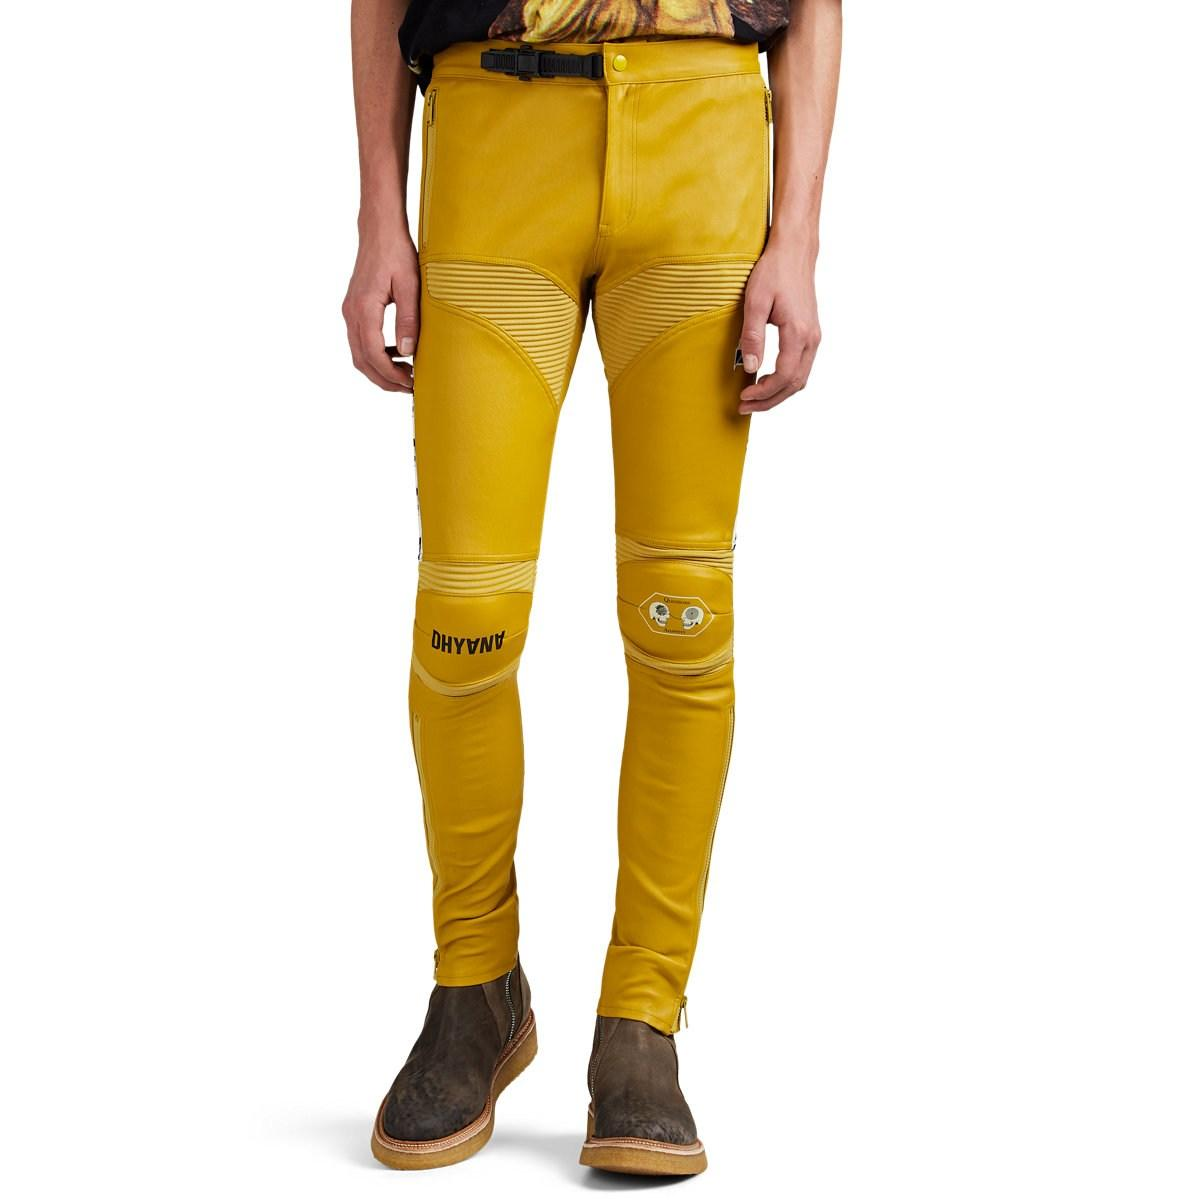 743a85afbfcfb7 Undercover Leather Skinny Moto Trousers in Yellow for Men - Lyst